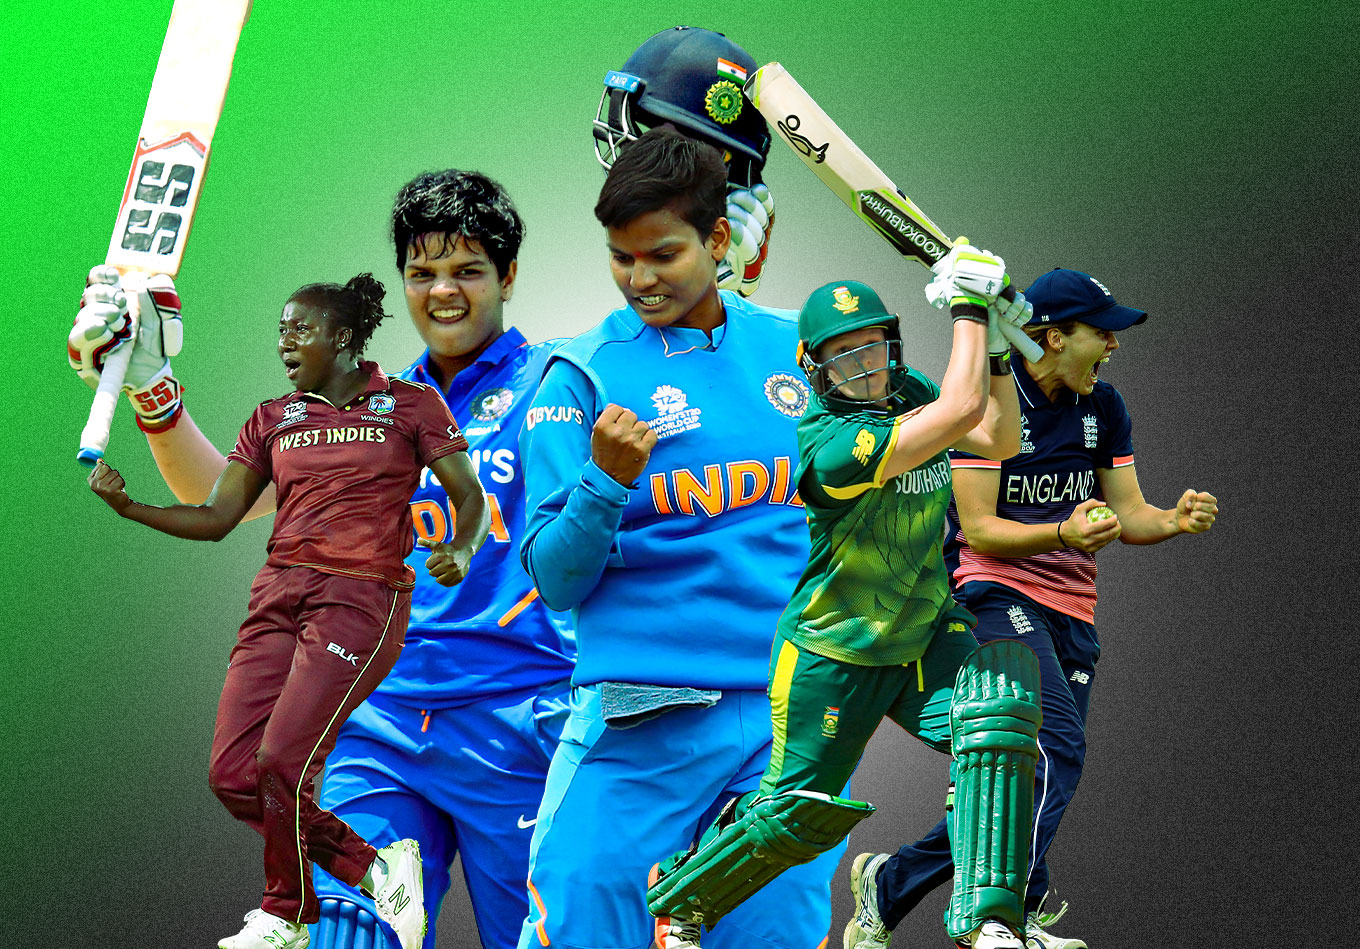 The Hundred: 5 Women's Players to Watch